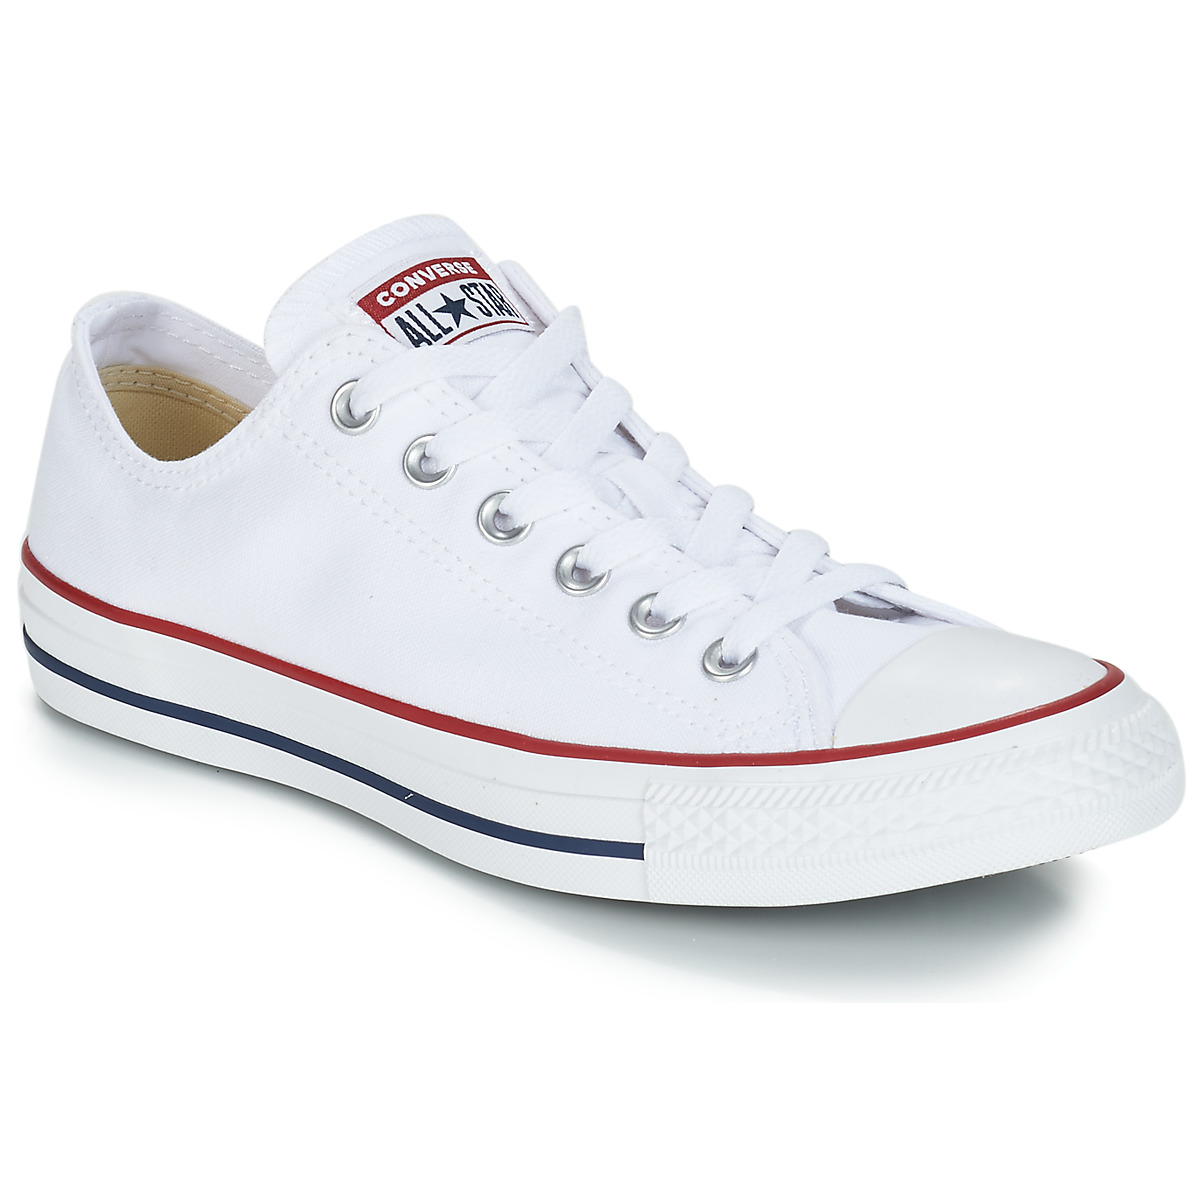 1754ca20526fd Chaussures Baskets basses Converse CHUCK TAYLOR ALL STAR CORE OX Blanc  Optical